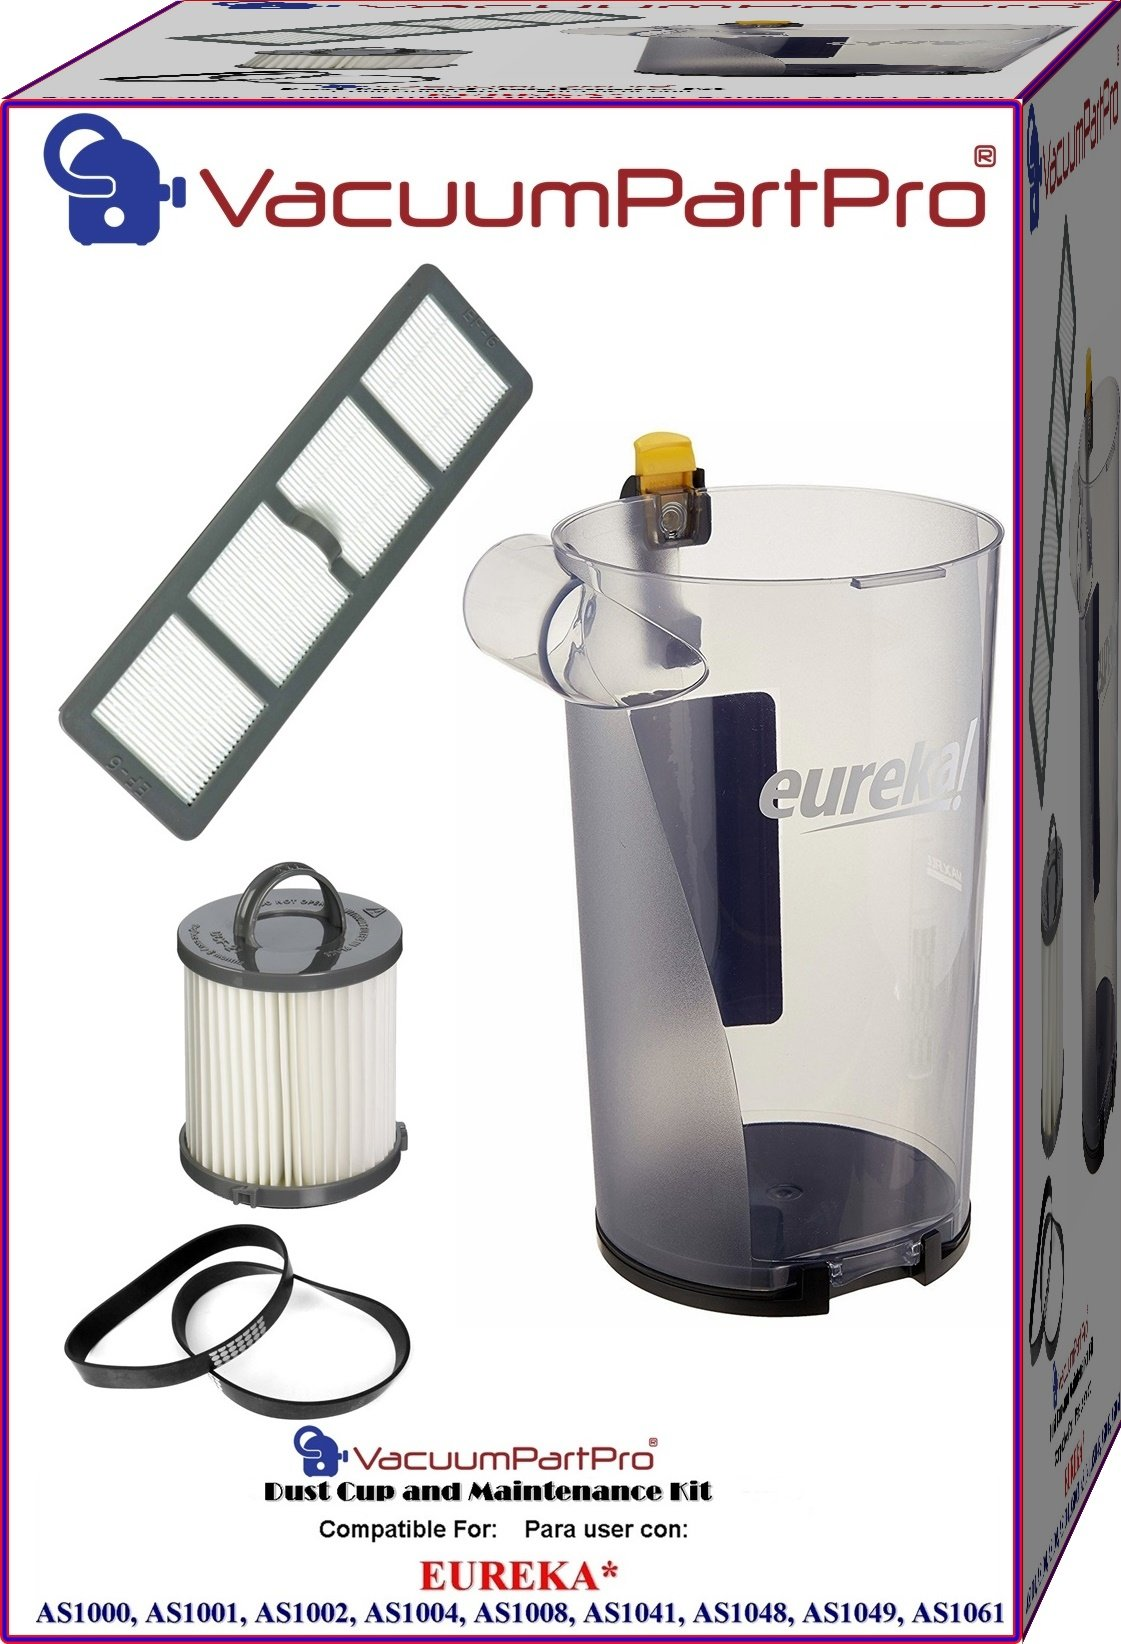 Eureka AirSpeed AS1000, AS1001, AS1002, AS1004, AS1008, AS1041, AS1048, AS1049, AS1061 Dust Cup and Maintenance Kit By Vacuum Part Pro